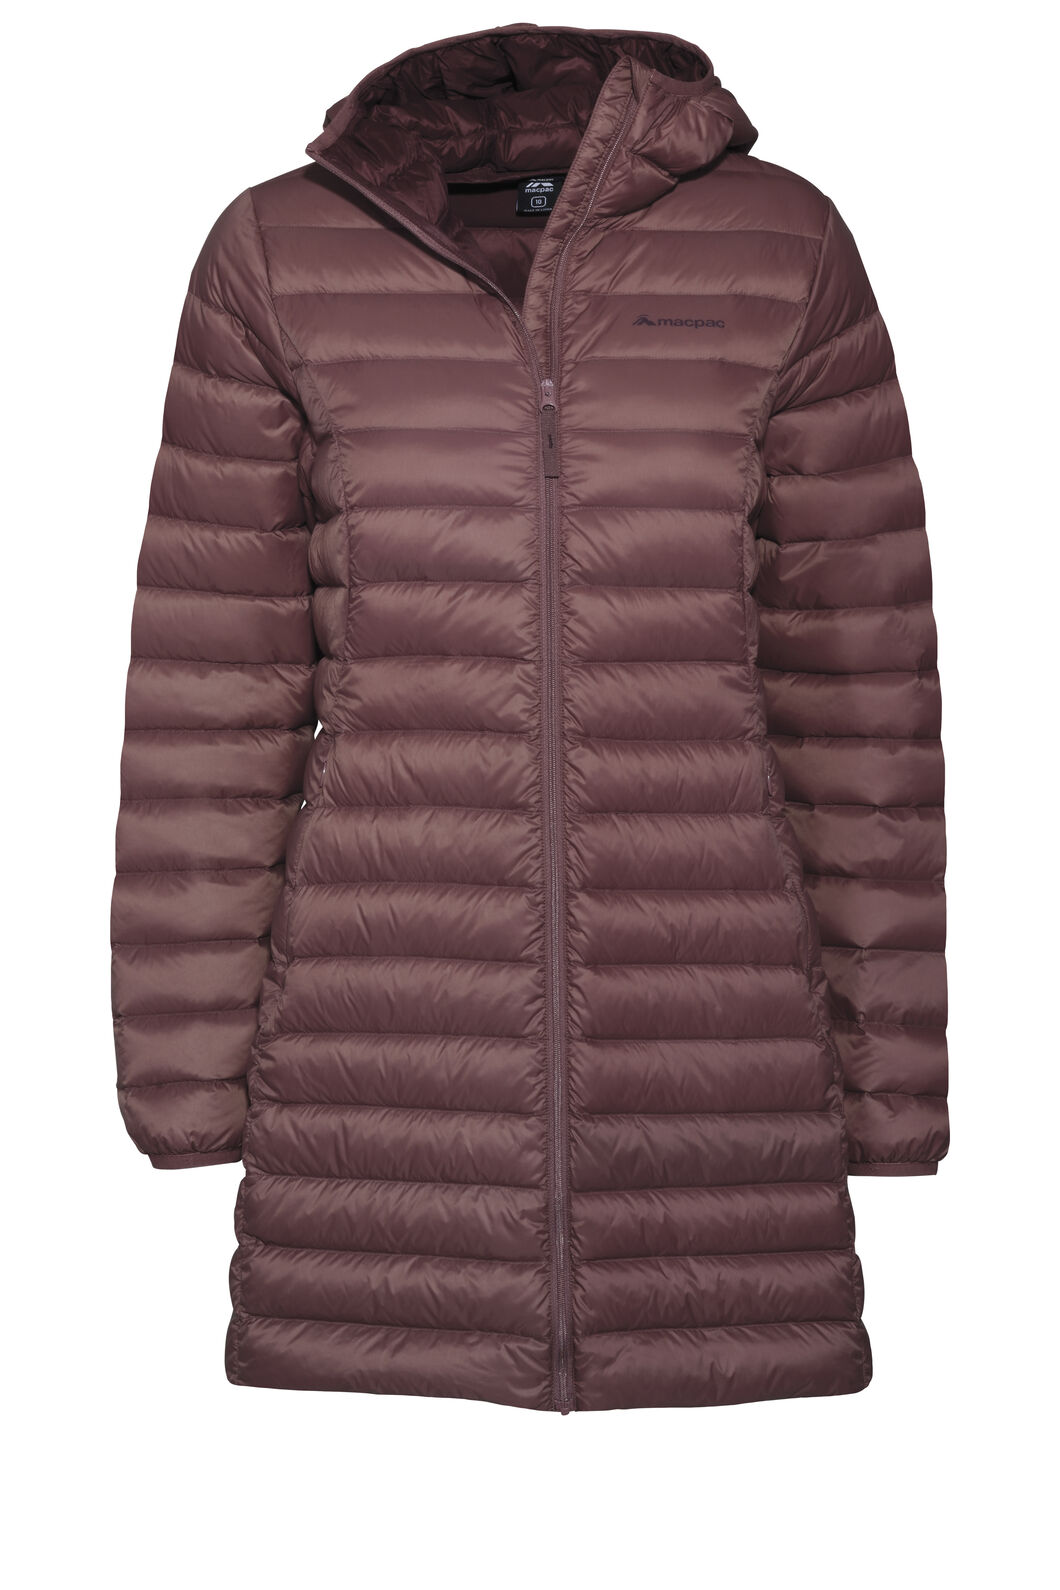 Macpac Uber Light Hooded Down Coat — Women's, Rose Brown, hi-res